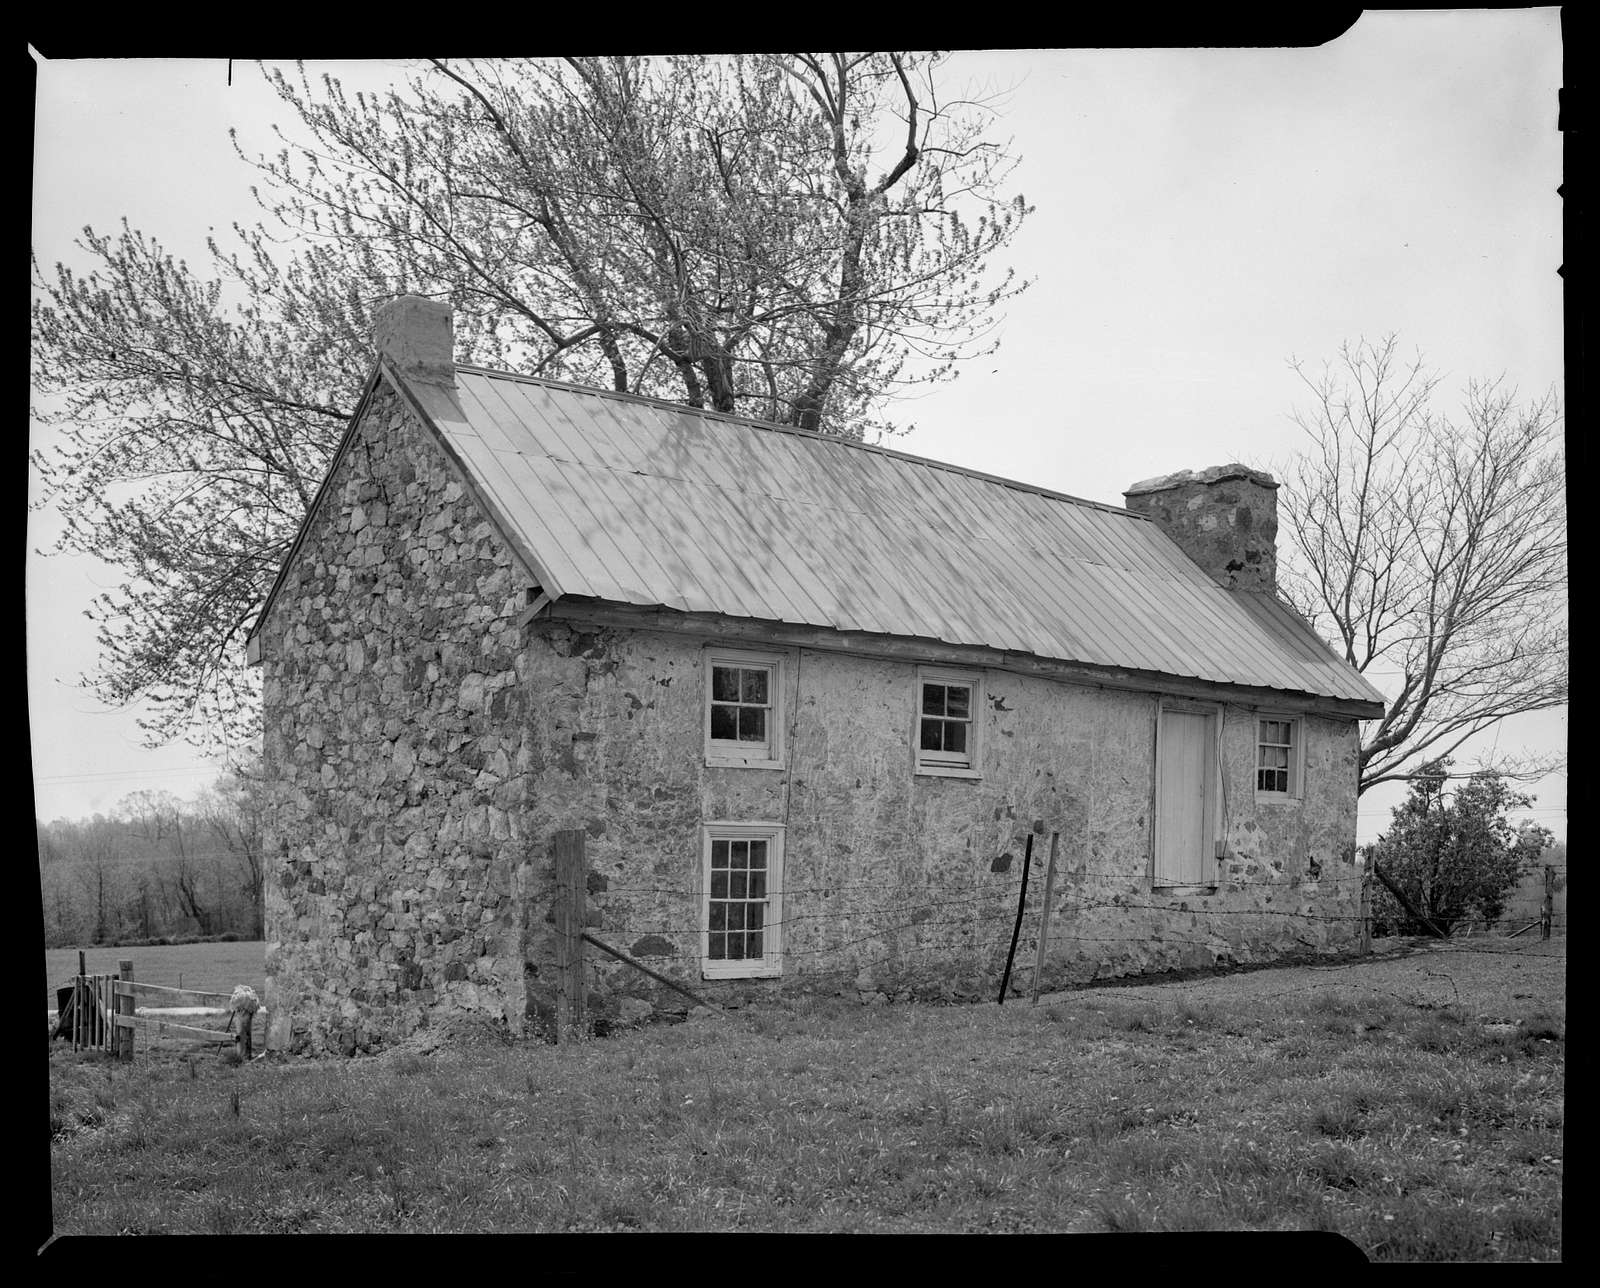 House (Rural Farmhouse), Pleasant Hill Road, Corner Ketch, New Castle County, DE